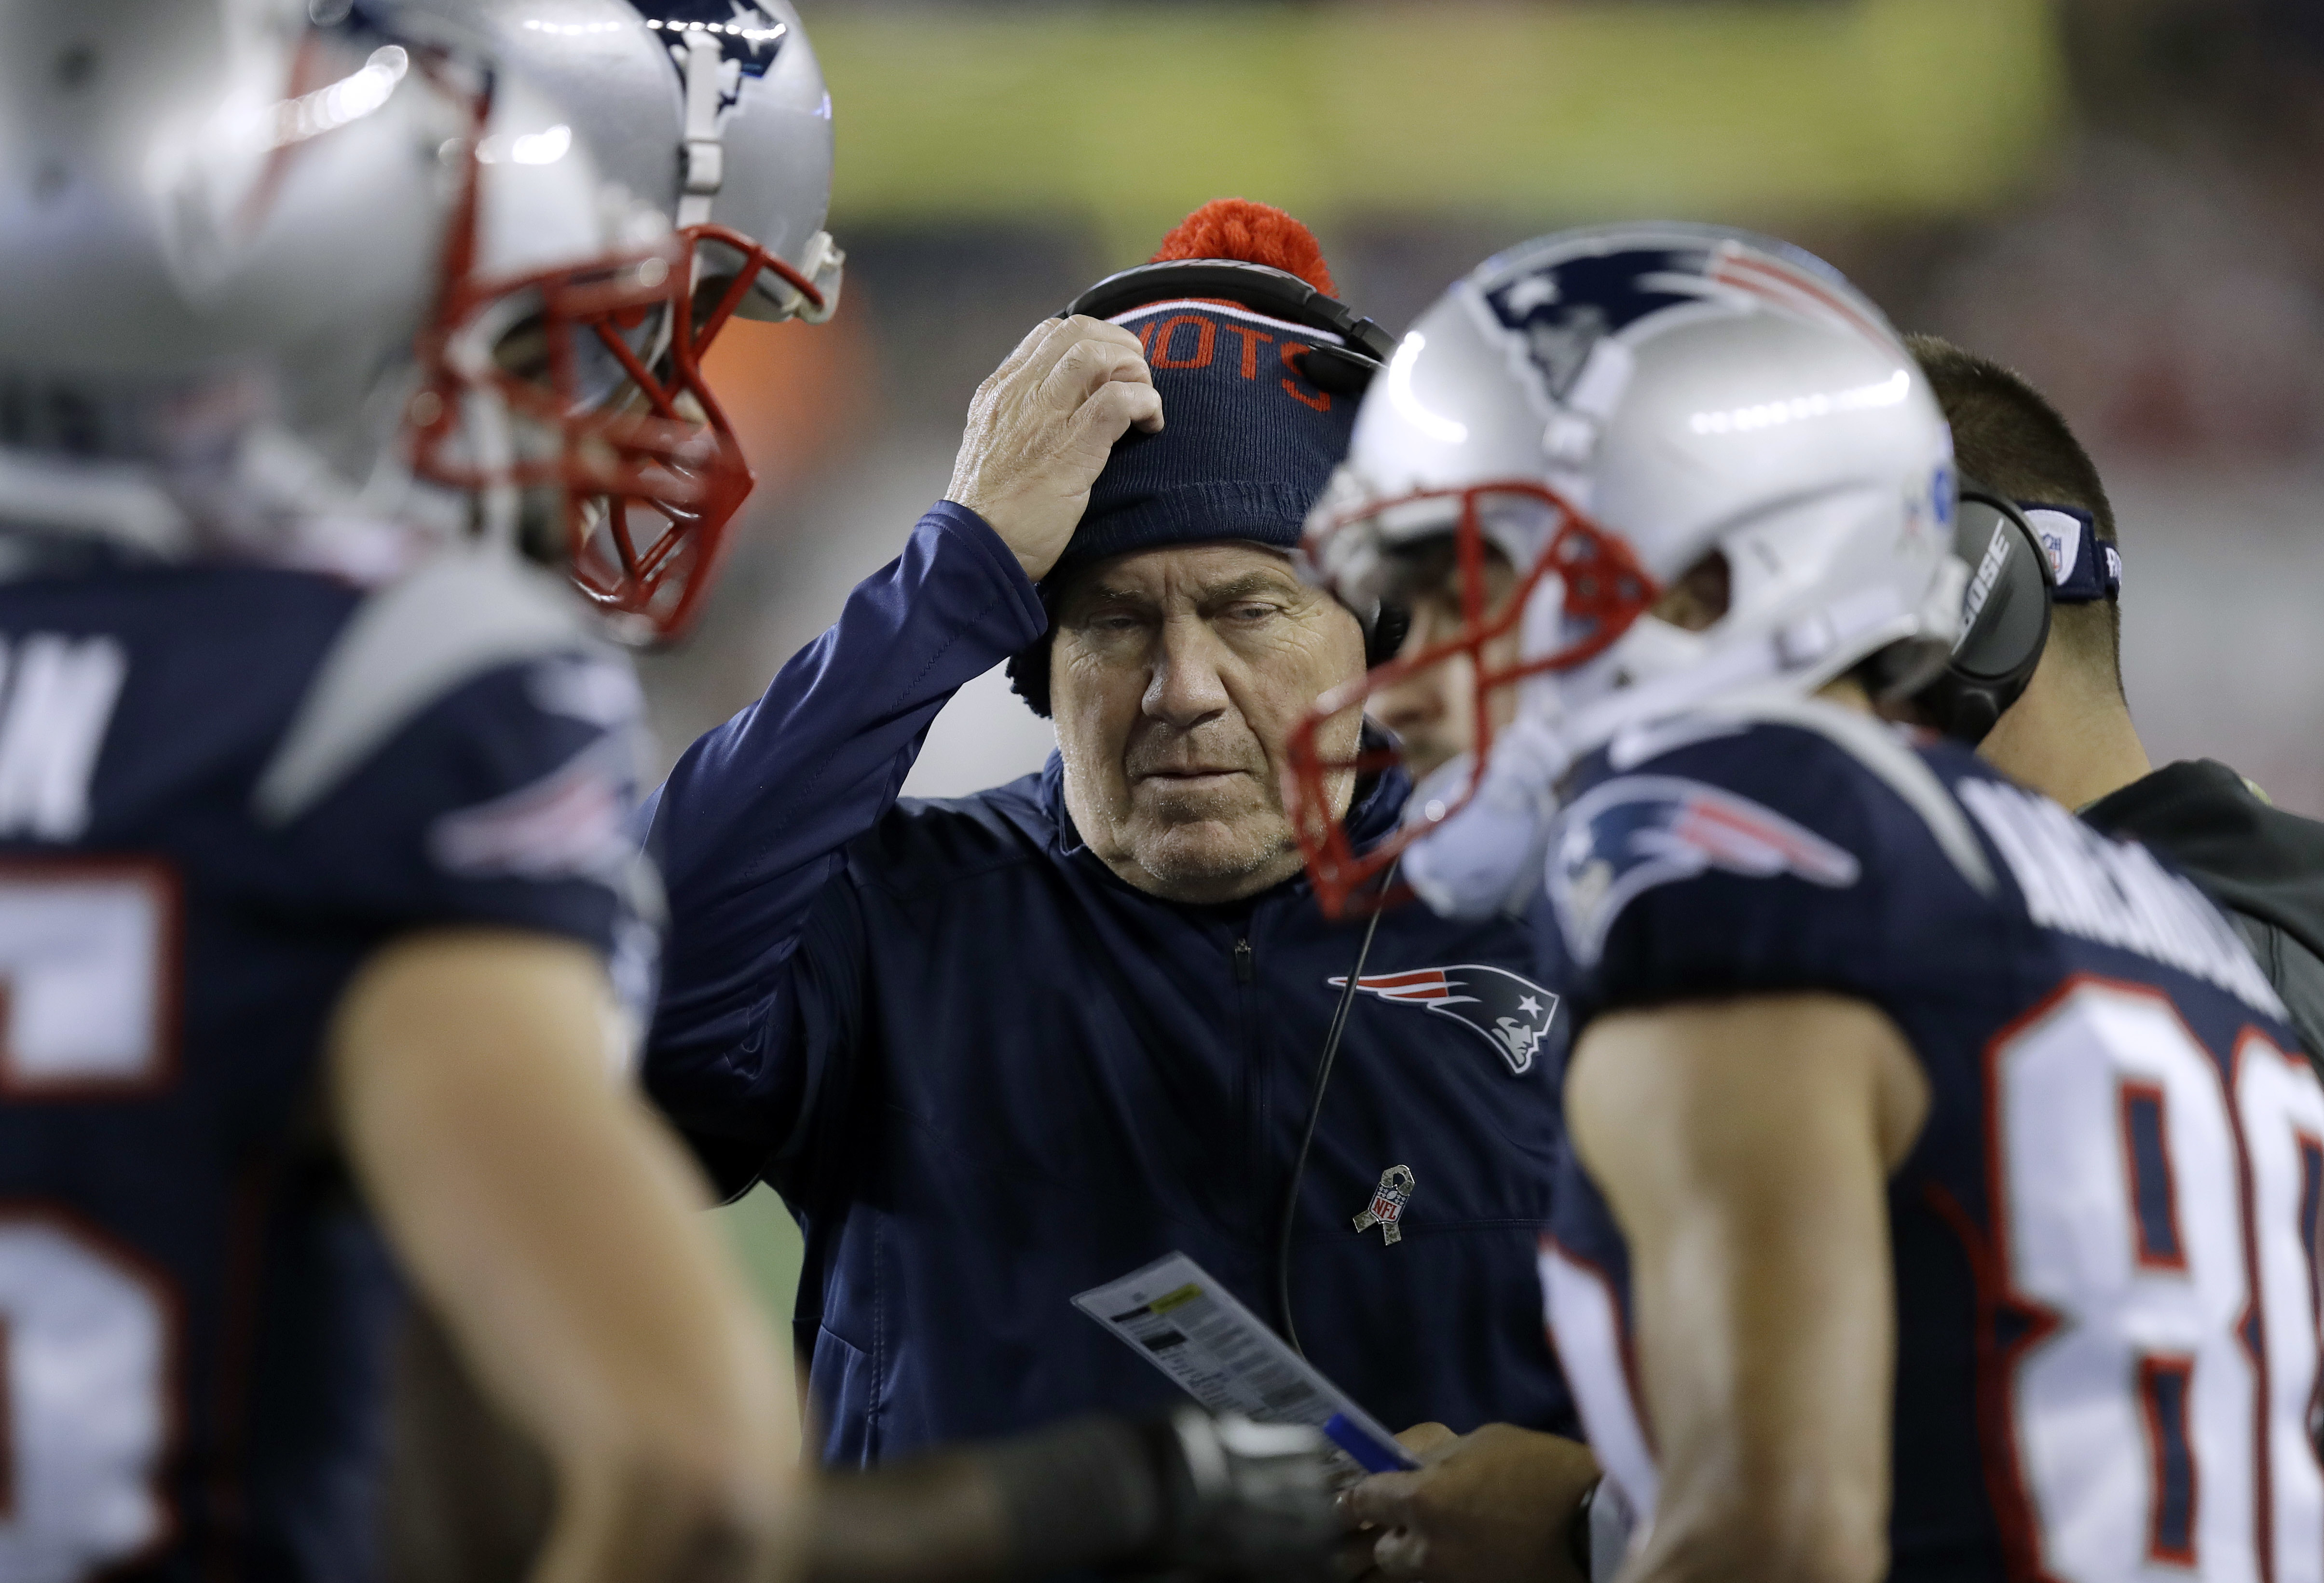 New England Patriots head coach Bill Belichick, center, talks with his team on the sideline during the first half of an NFL football game against the Seattle Seahawks, Sunday, Nov. 13, 2016, in Foxborough, Mass. (AP Photo/Charles Krupa)